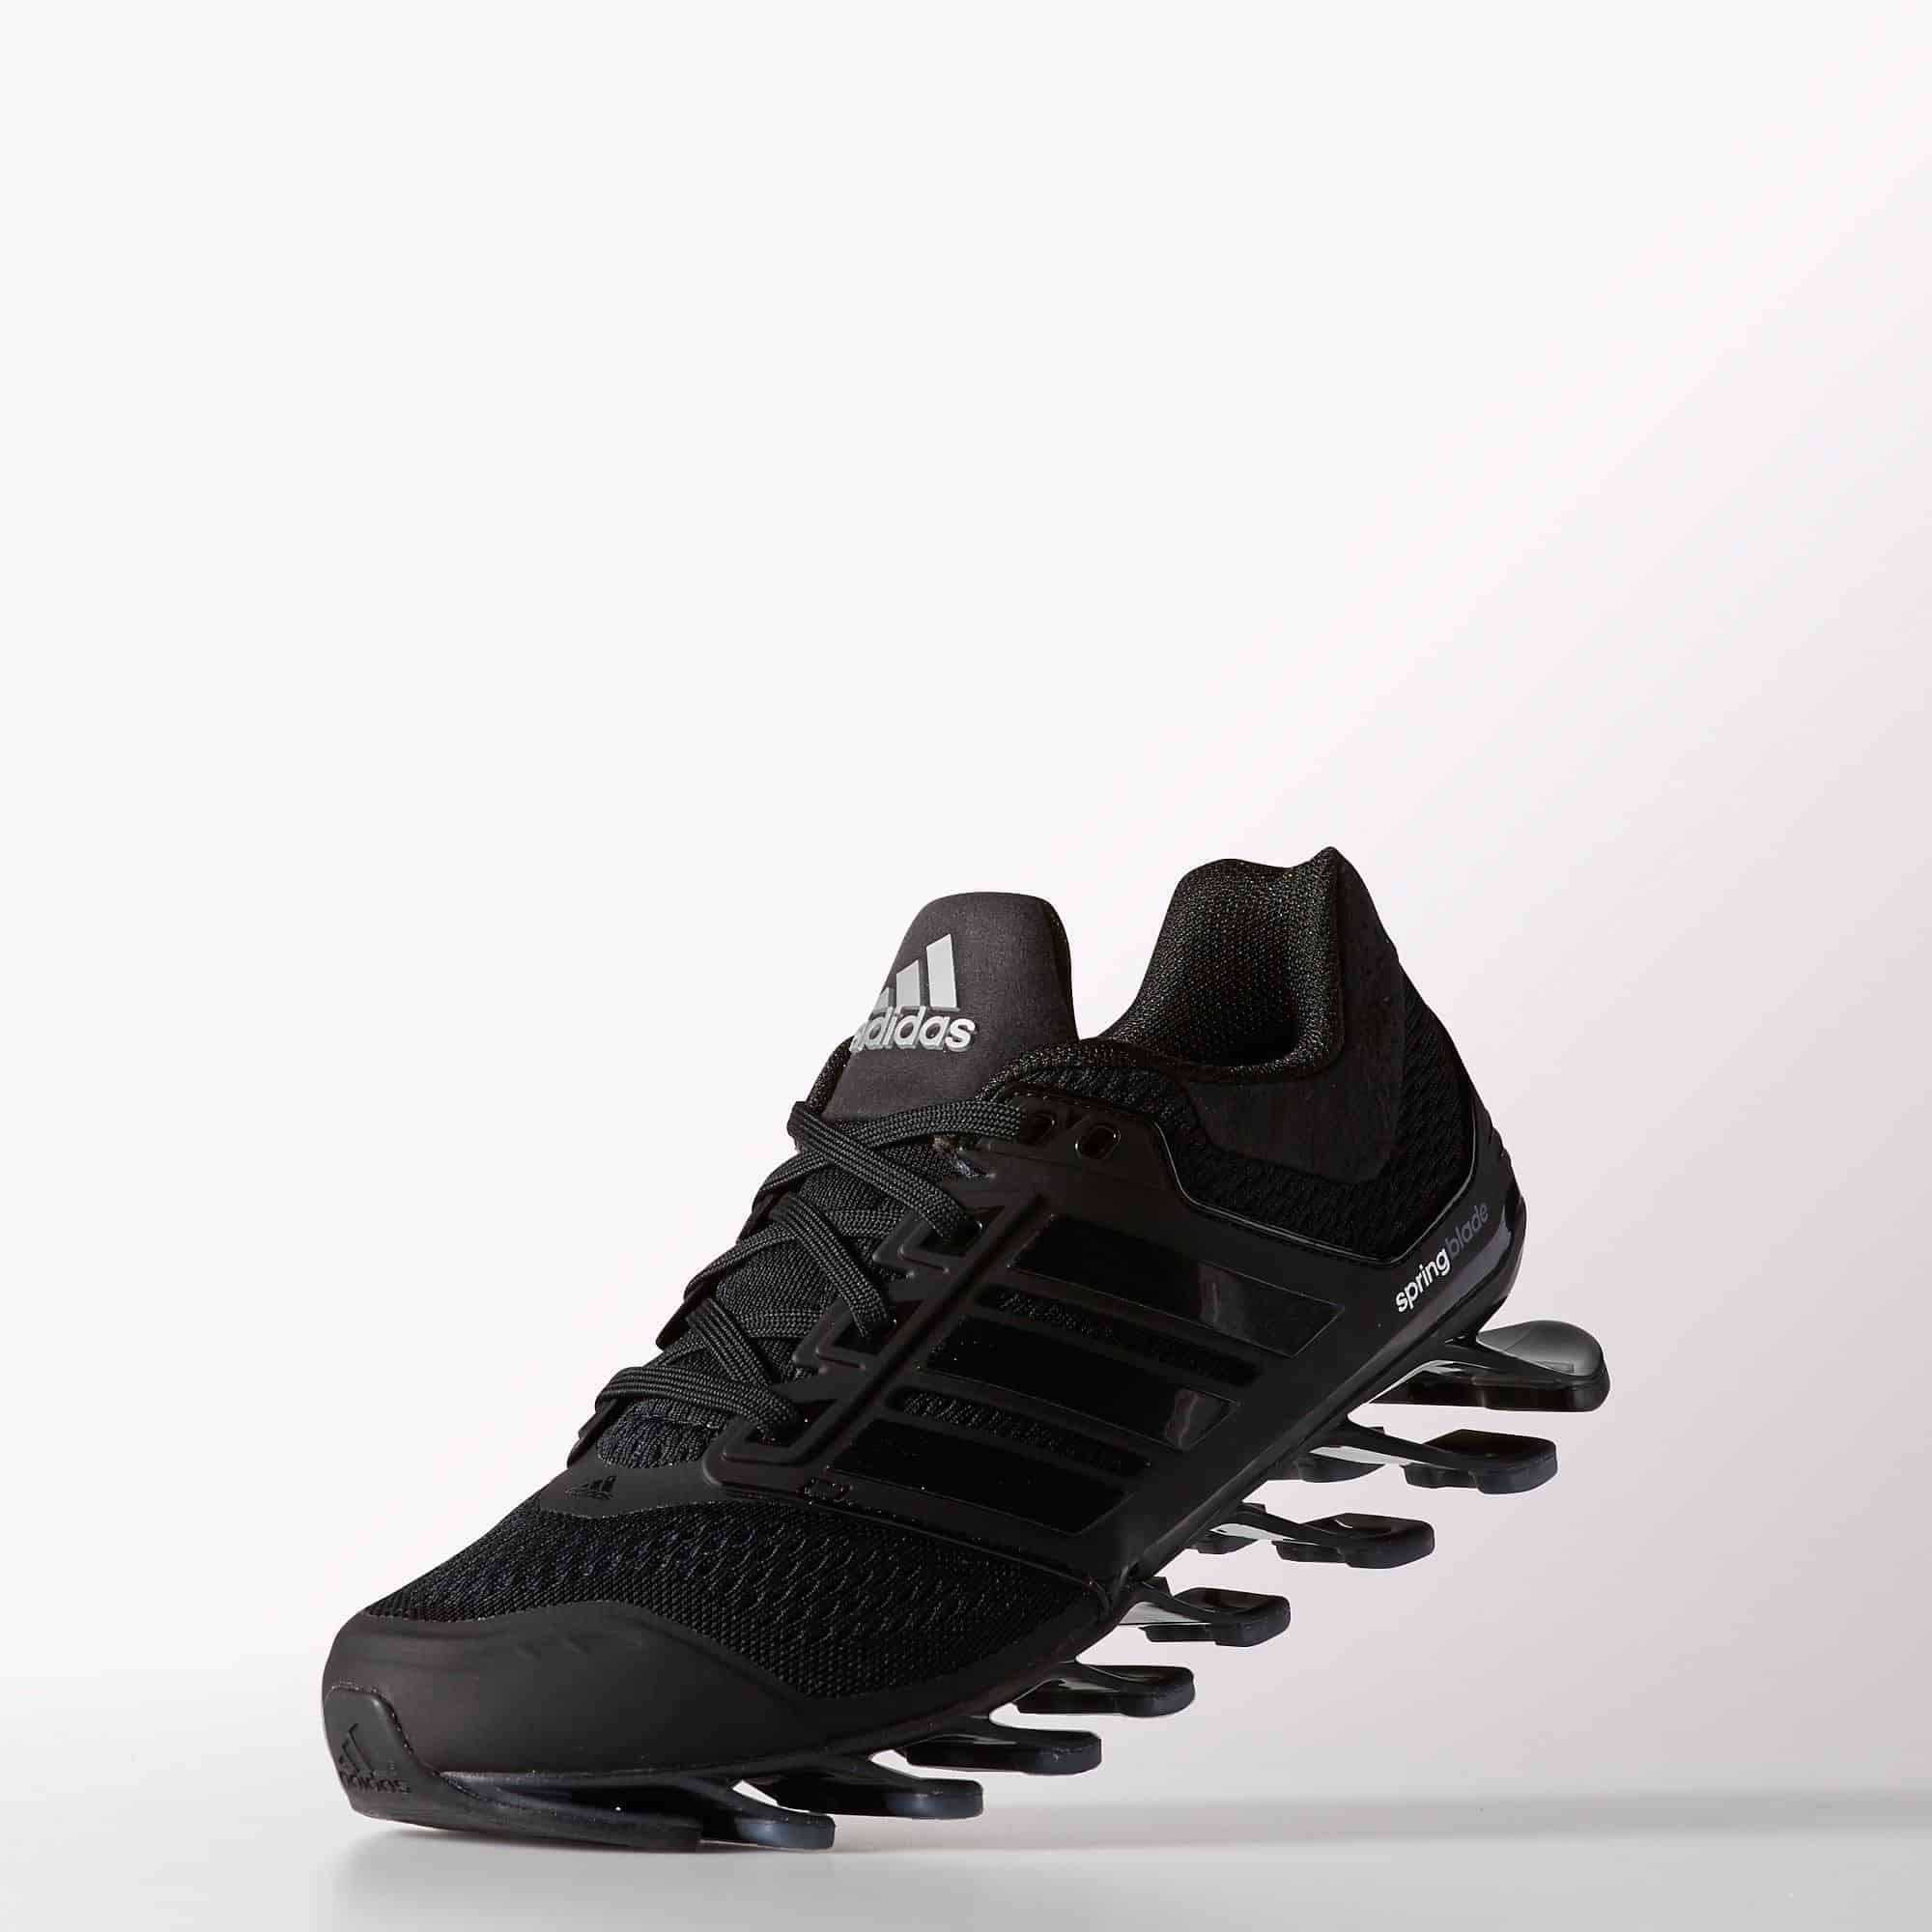 Adidas Springblade Running Shoes Weird  Ergonomic Design